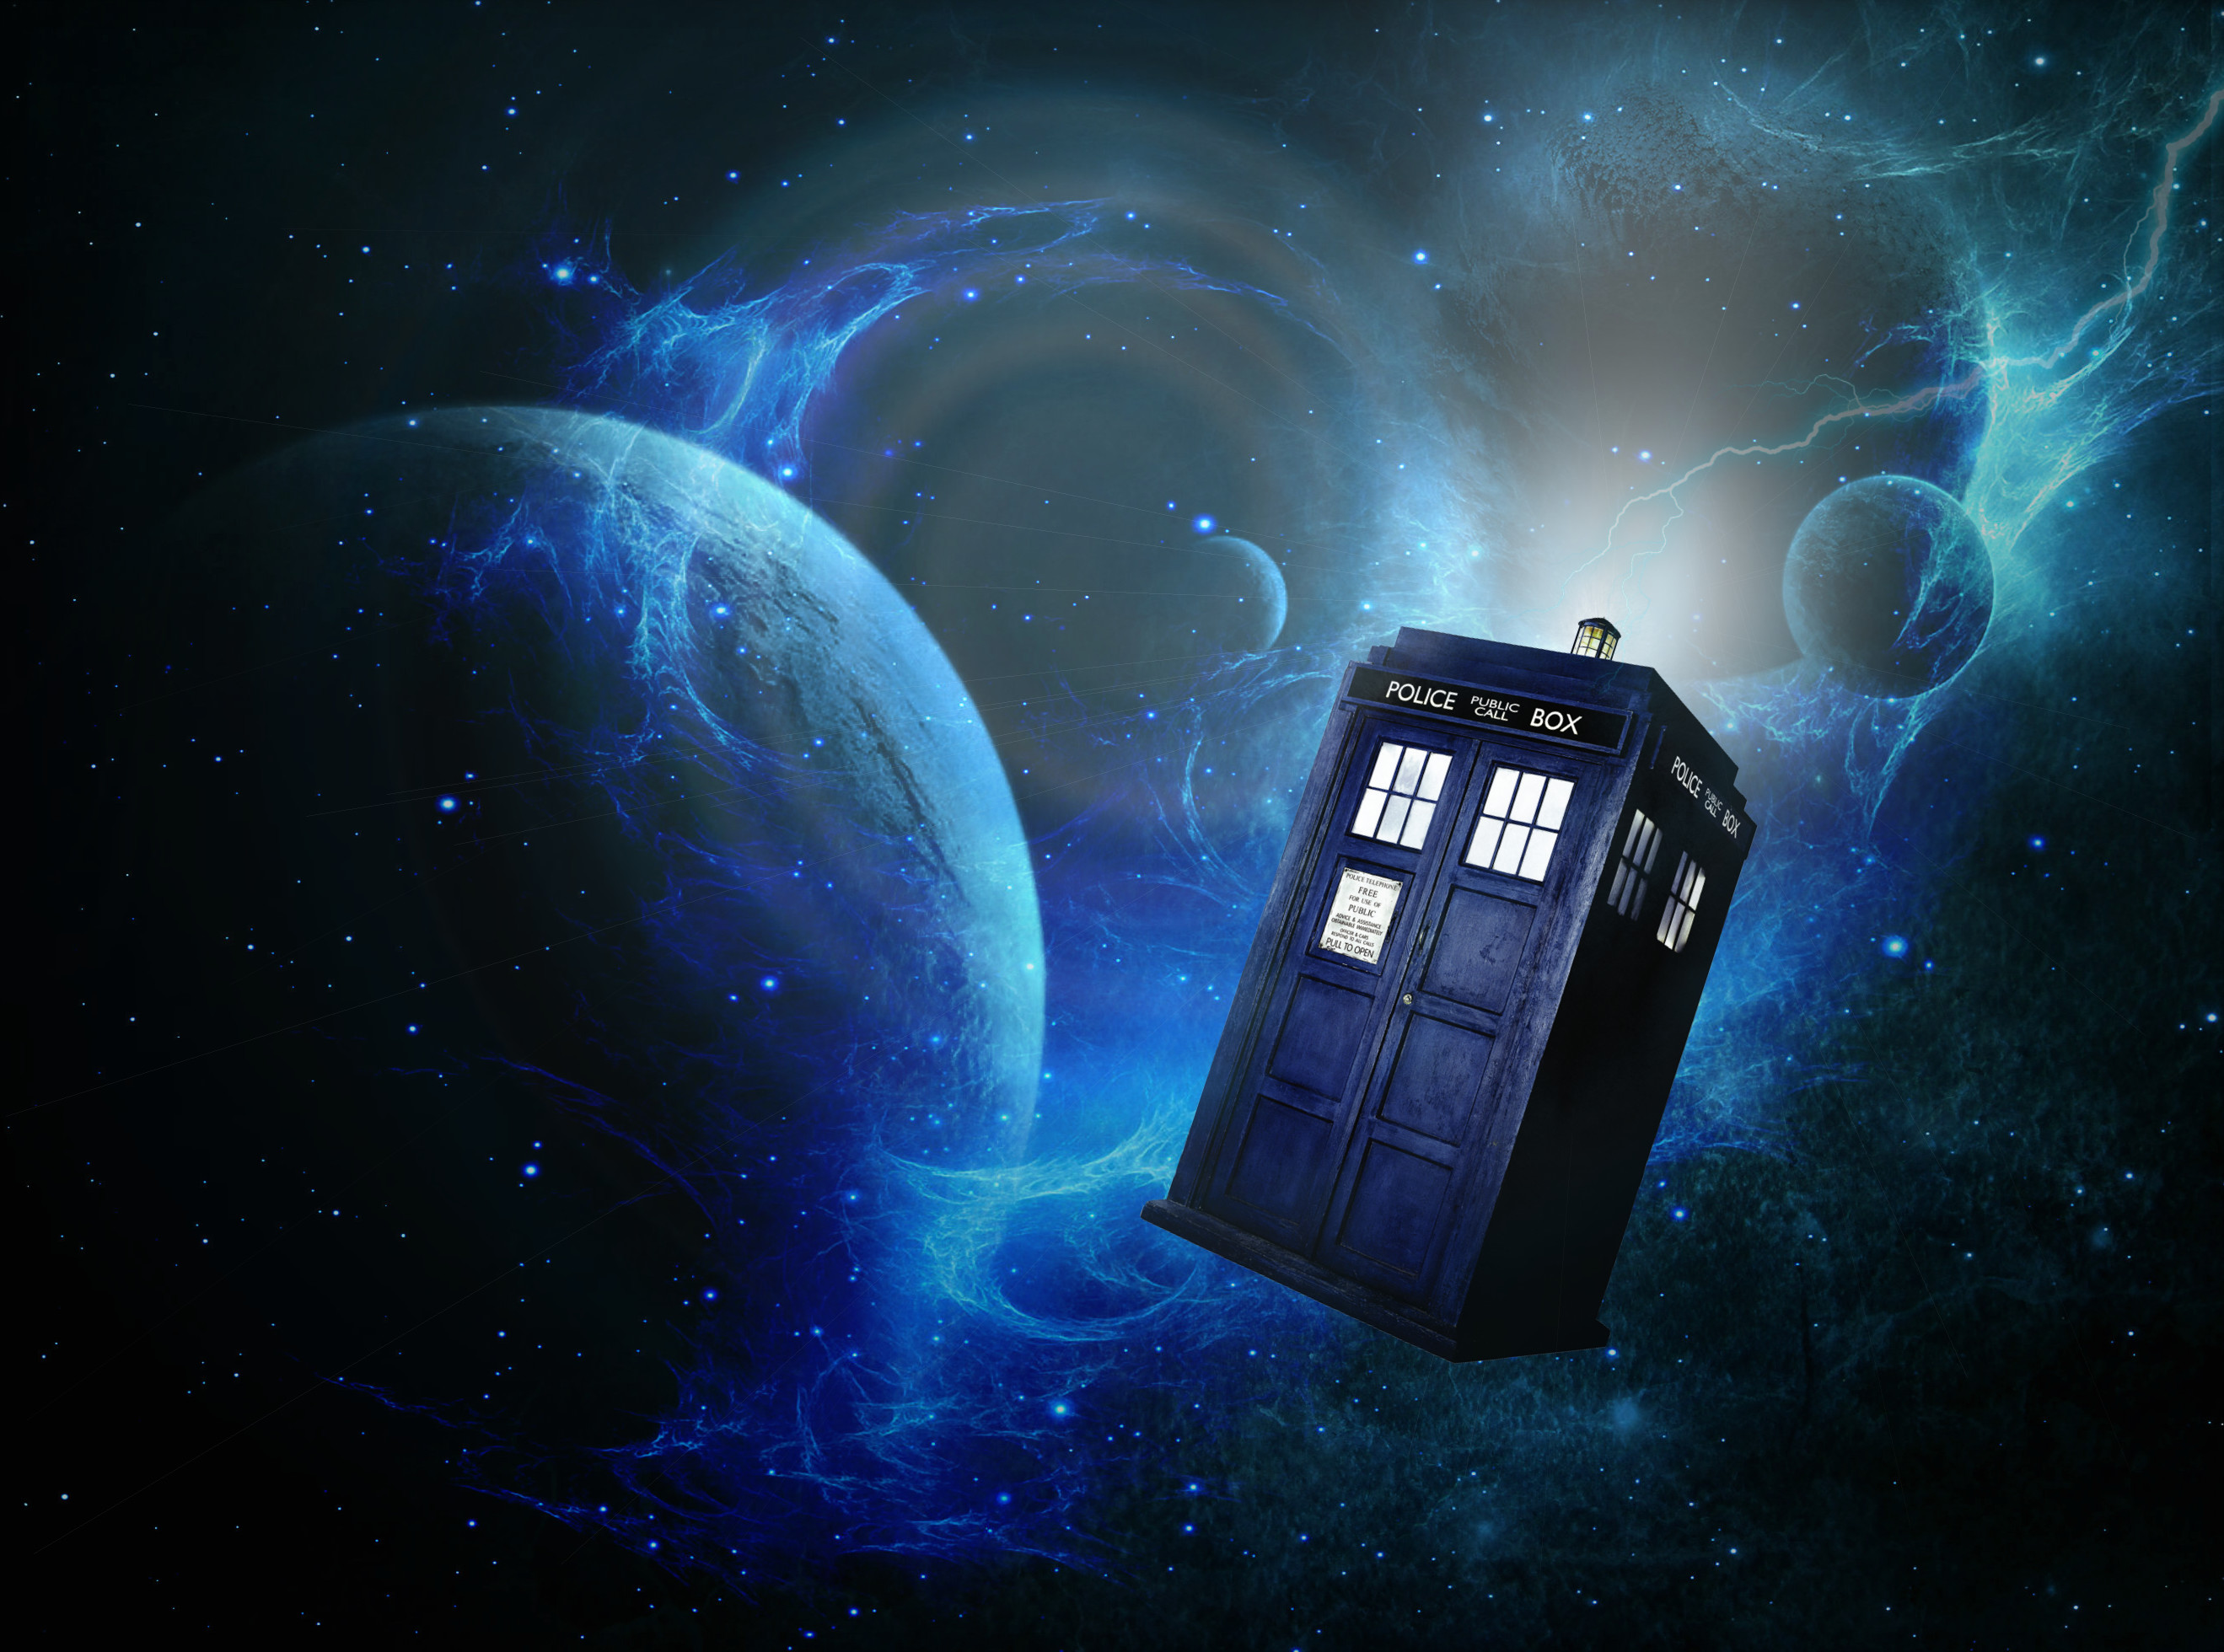 2638x1960 Doctor Who Wallpaper Tardis In Space 1